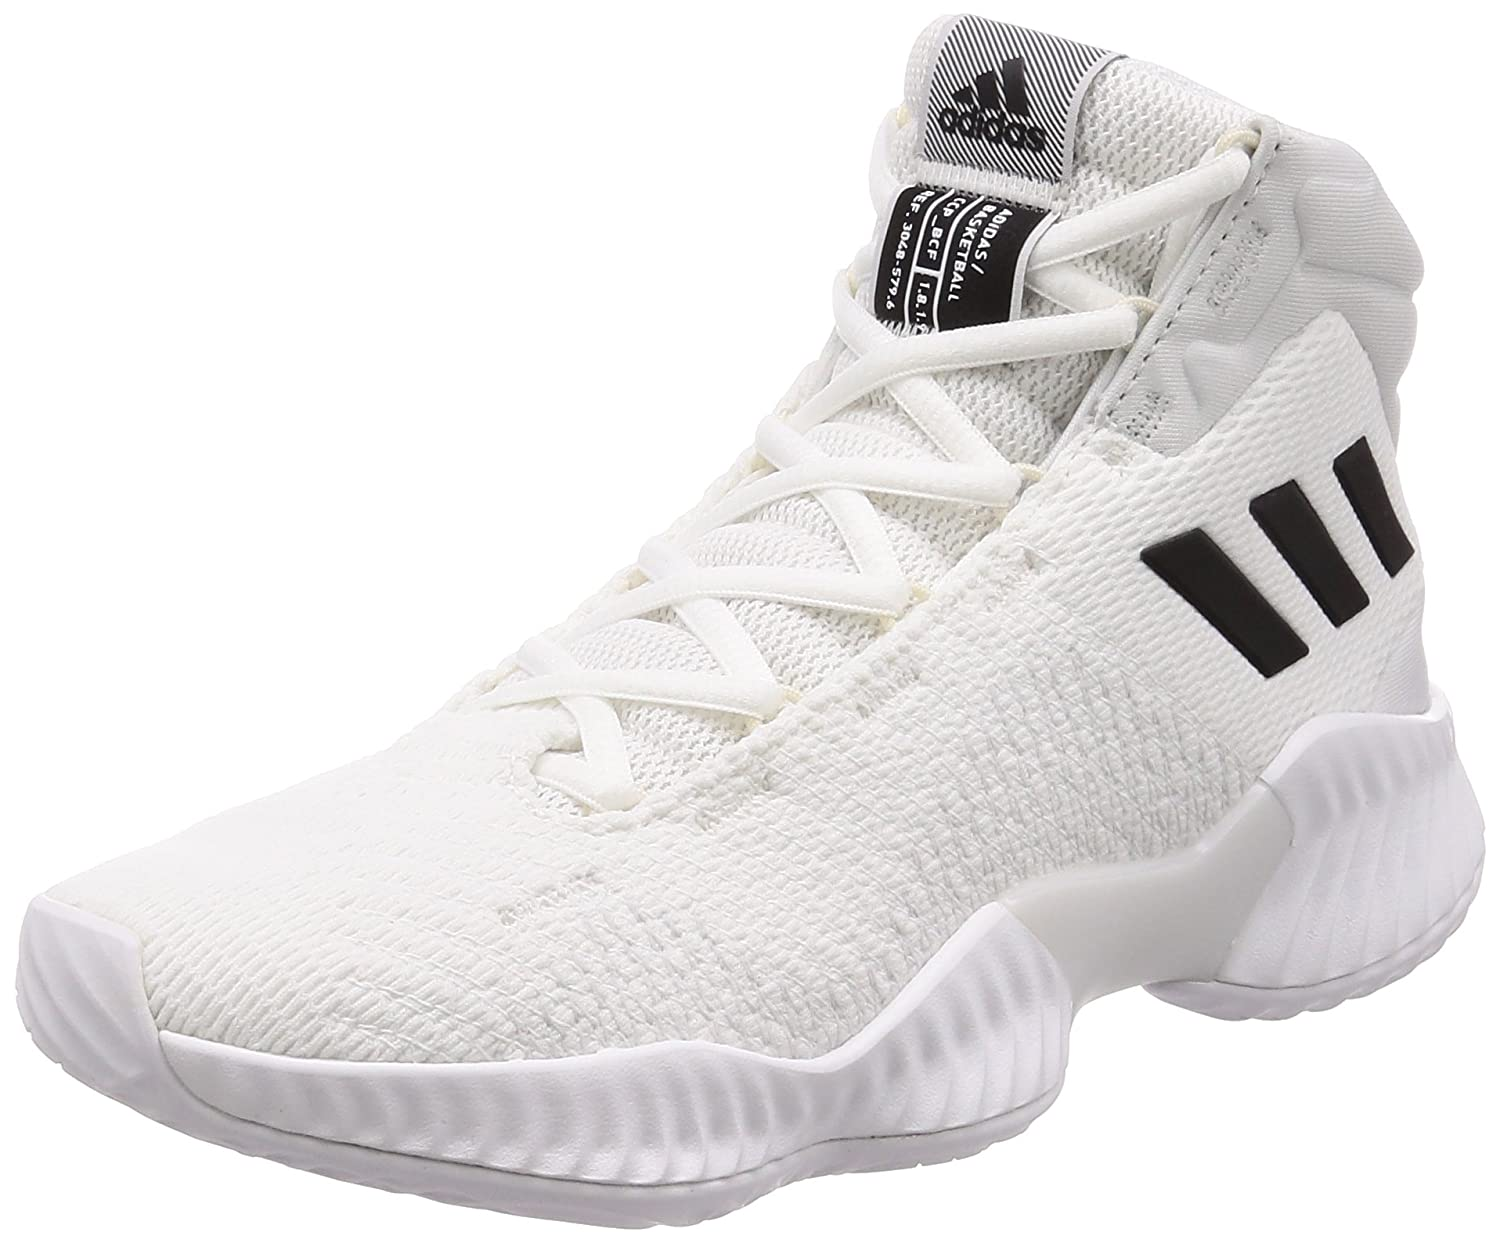 uk availability 6ef07 86099 adidas Pro Bounce 2018, Chaussures de Basketball Homme Amazon.fr  Chaussures et Sacs